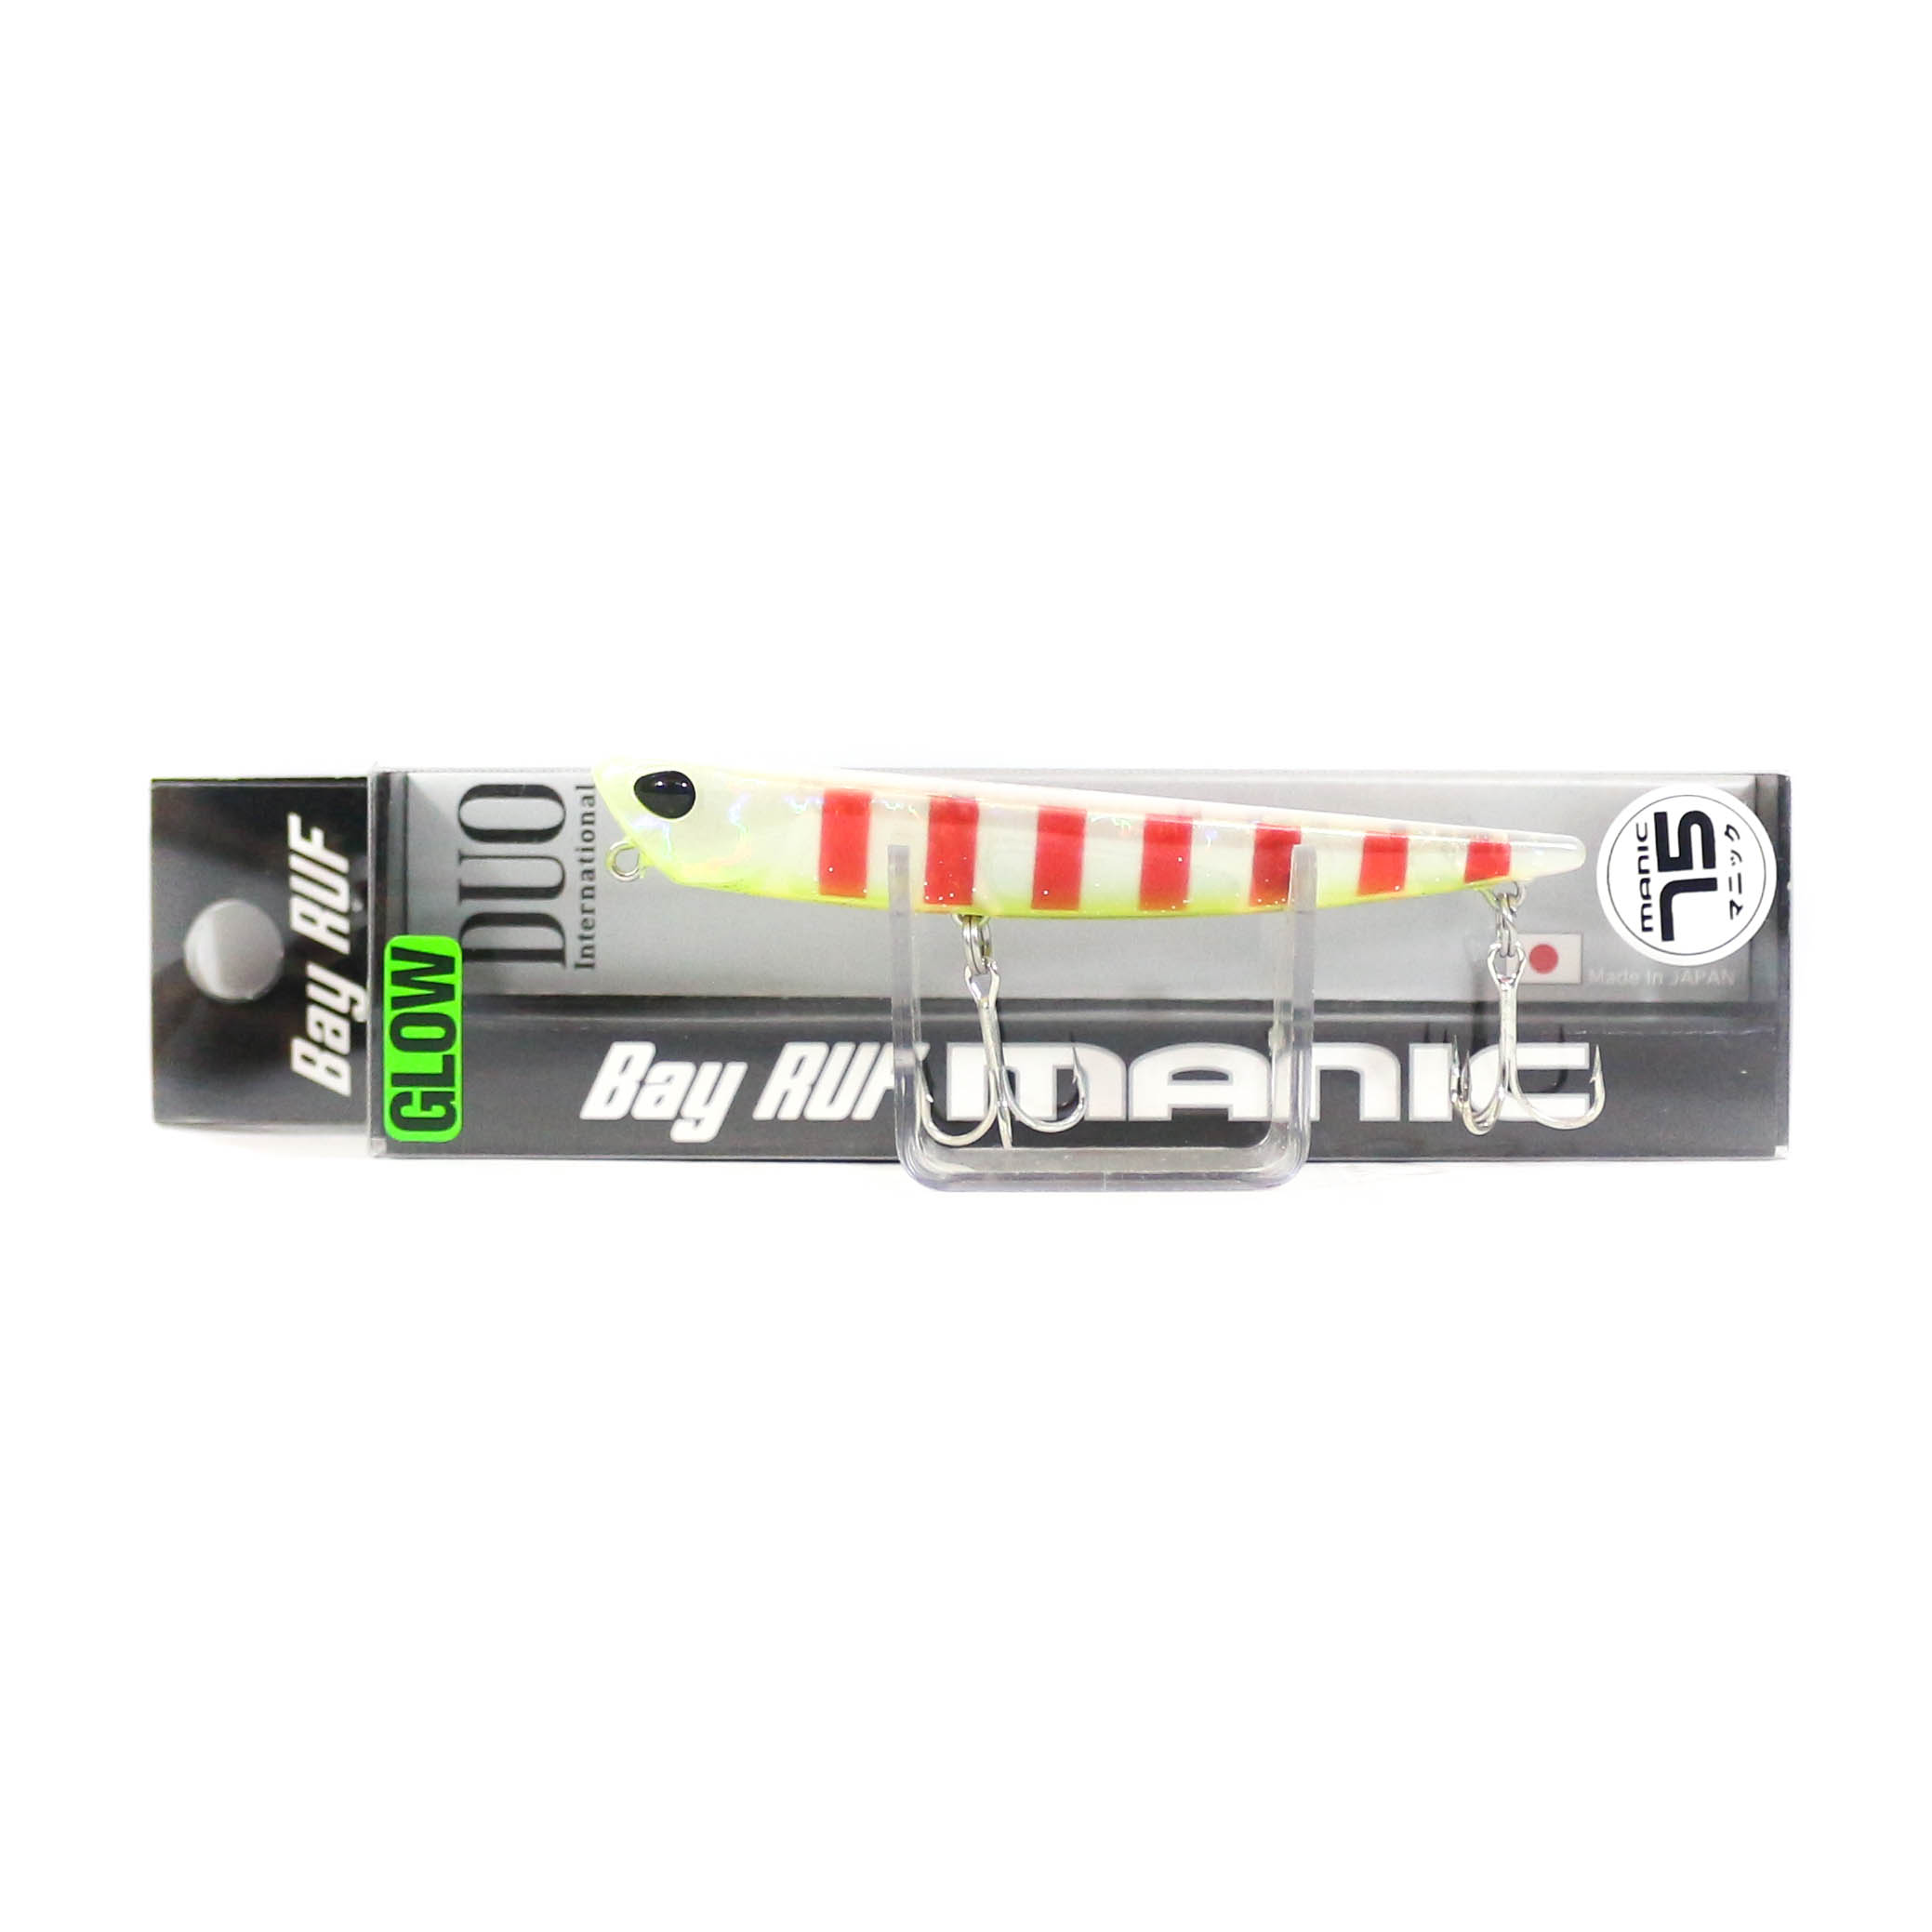 Duo Bay Ruf Manic 75 Pencil Sinking Lure CEB0216 (9360)